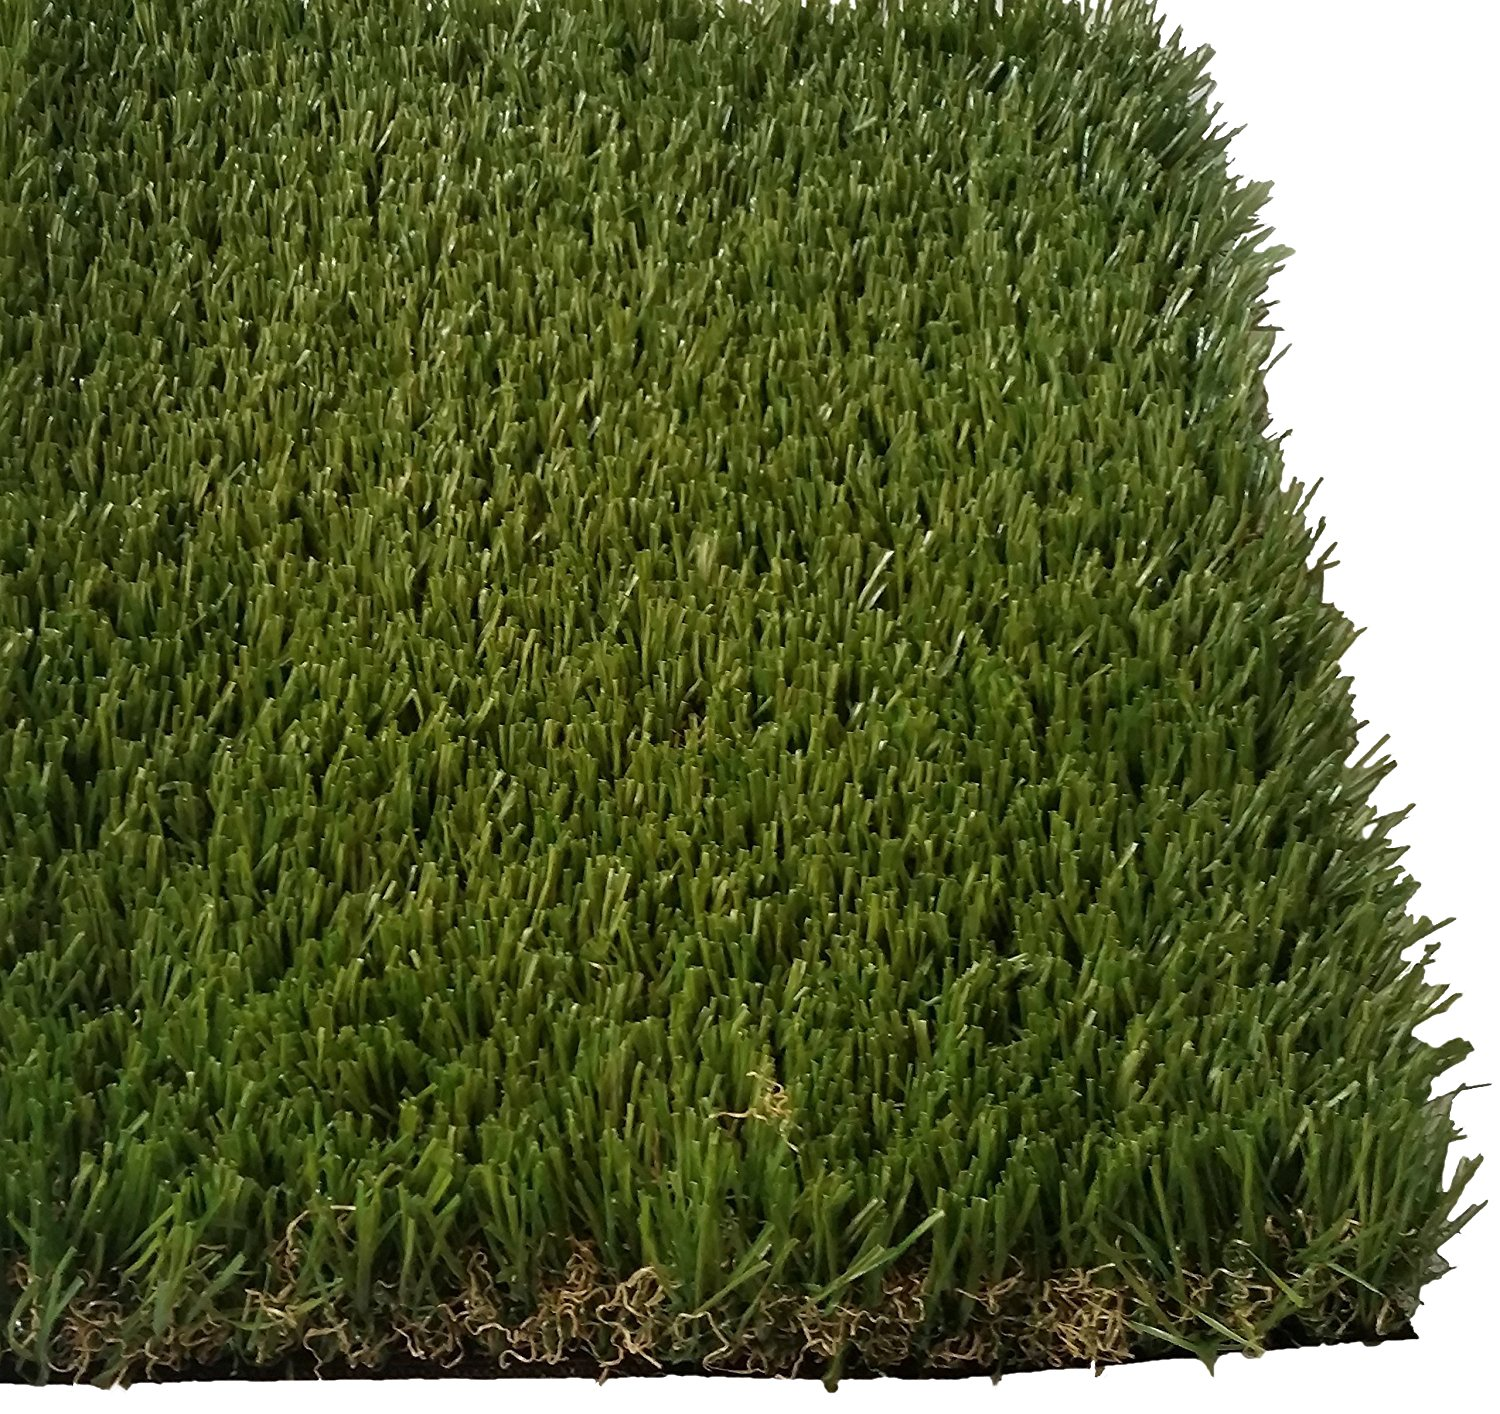 PZG Premium Deluxe Artificial Grass Patch w/ Drainage Holes | 4-Tone Synthetic Grass Mat | 1.6'' Height |Extra-Heavy & Soft Pet Turf | Lead-Free Fake Grass for Dogs or Outdoor Decor | Size: 9' x 6' by Pet Zen Garden